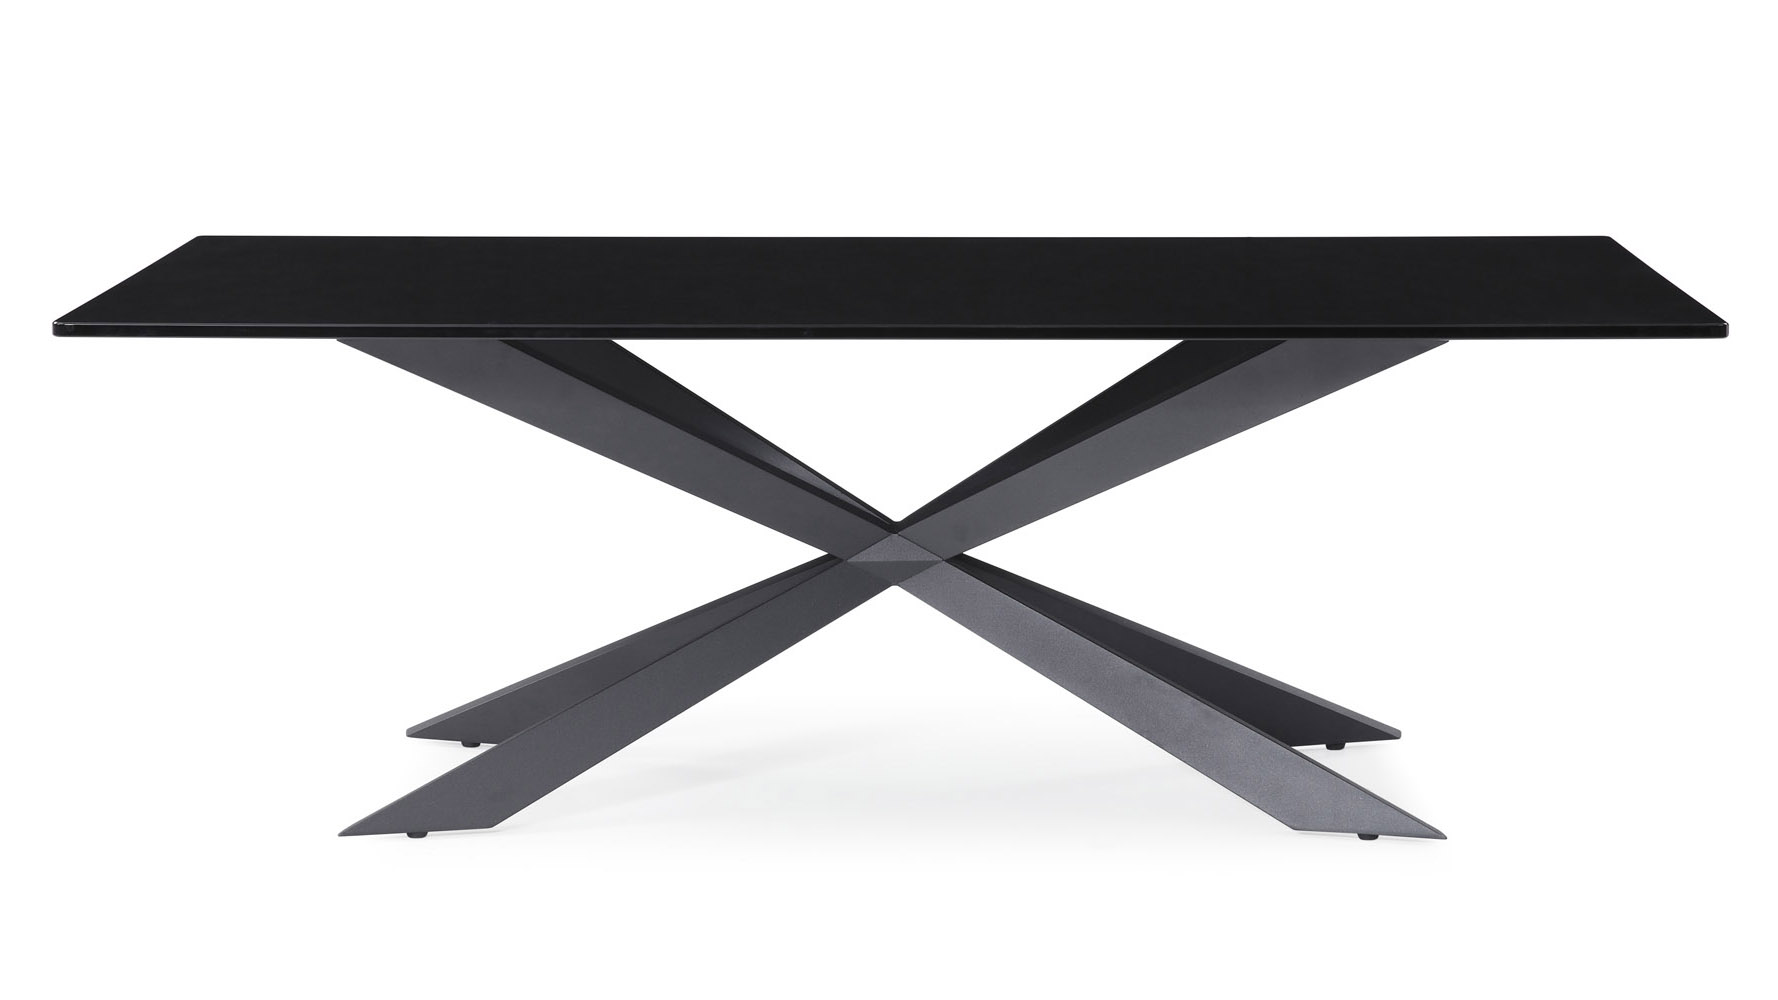 - Burton Modern Coffee Table Oversized 51 Inch In Smoked Glass With